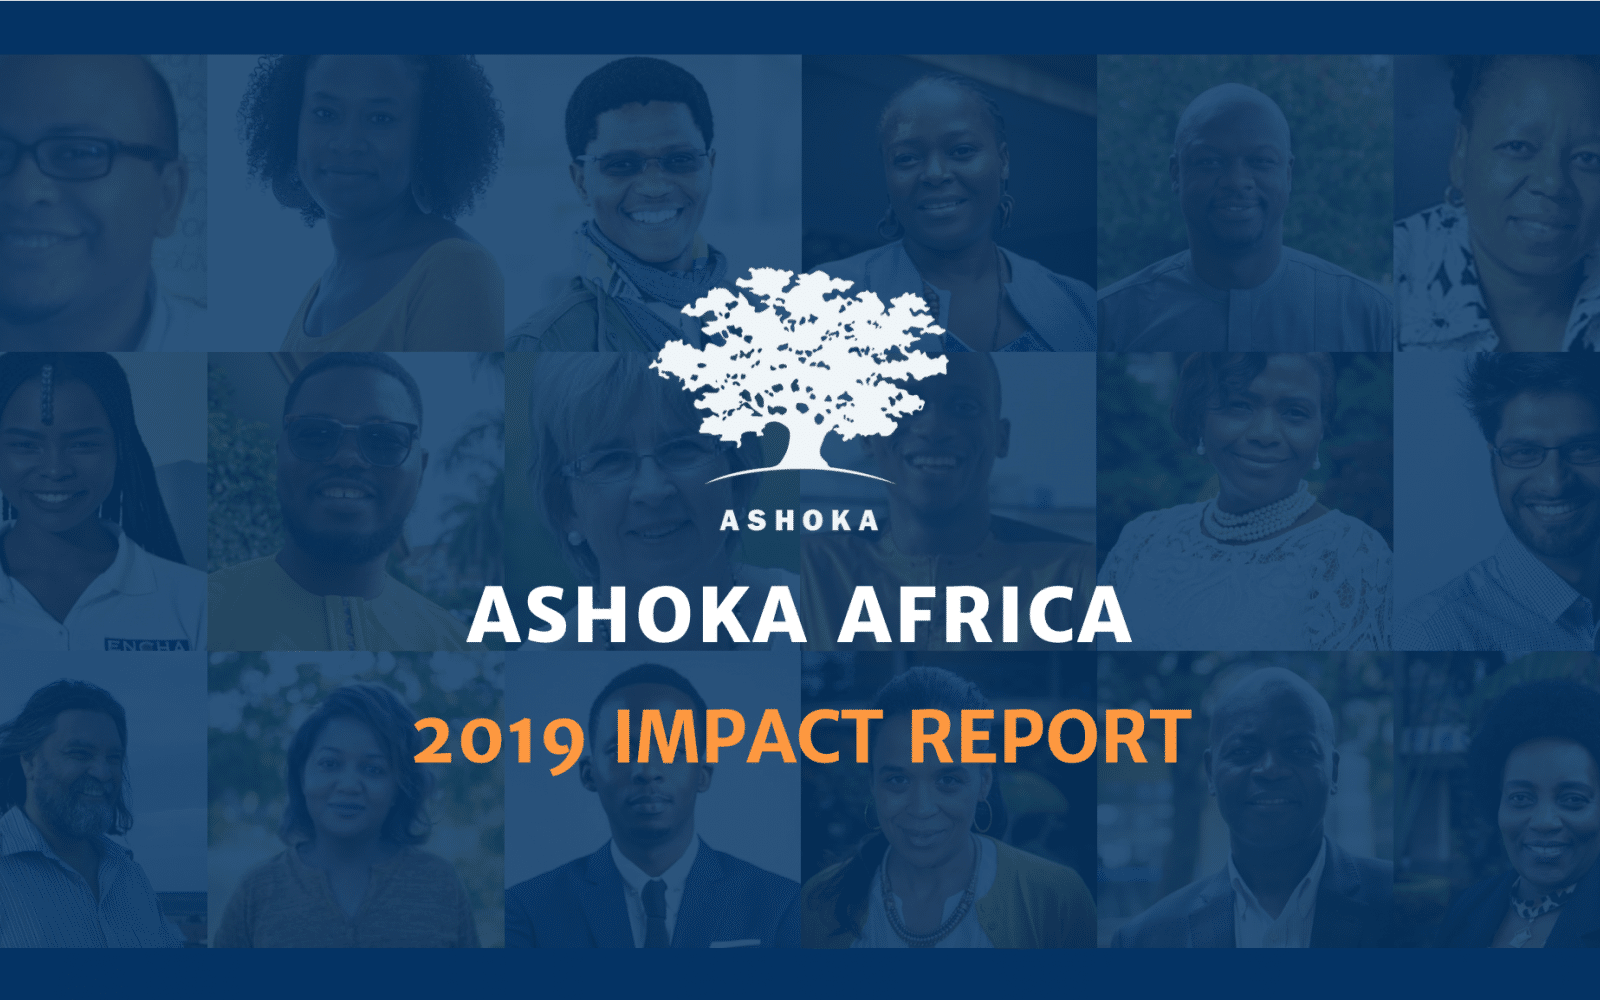 Cover image for Ashoka Africa 2019 Impact Report. It showcases a selected number of African Fellows and Young Changemakers